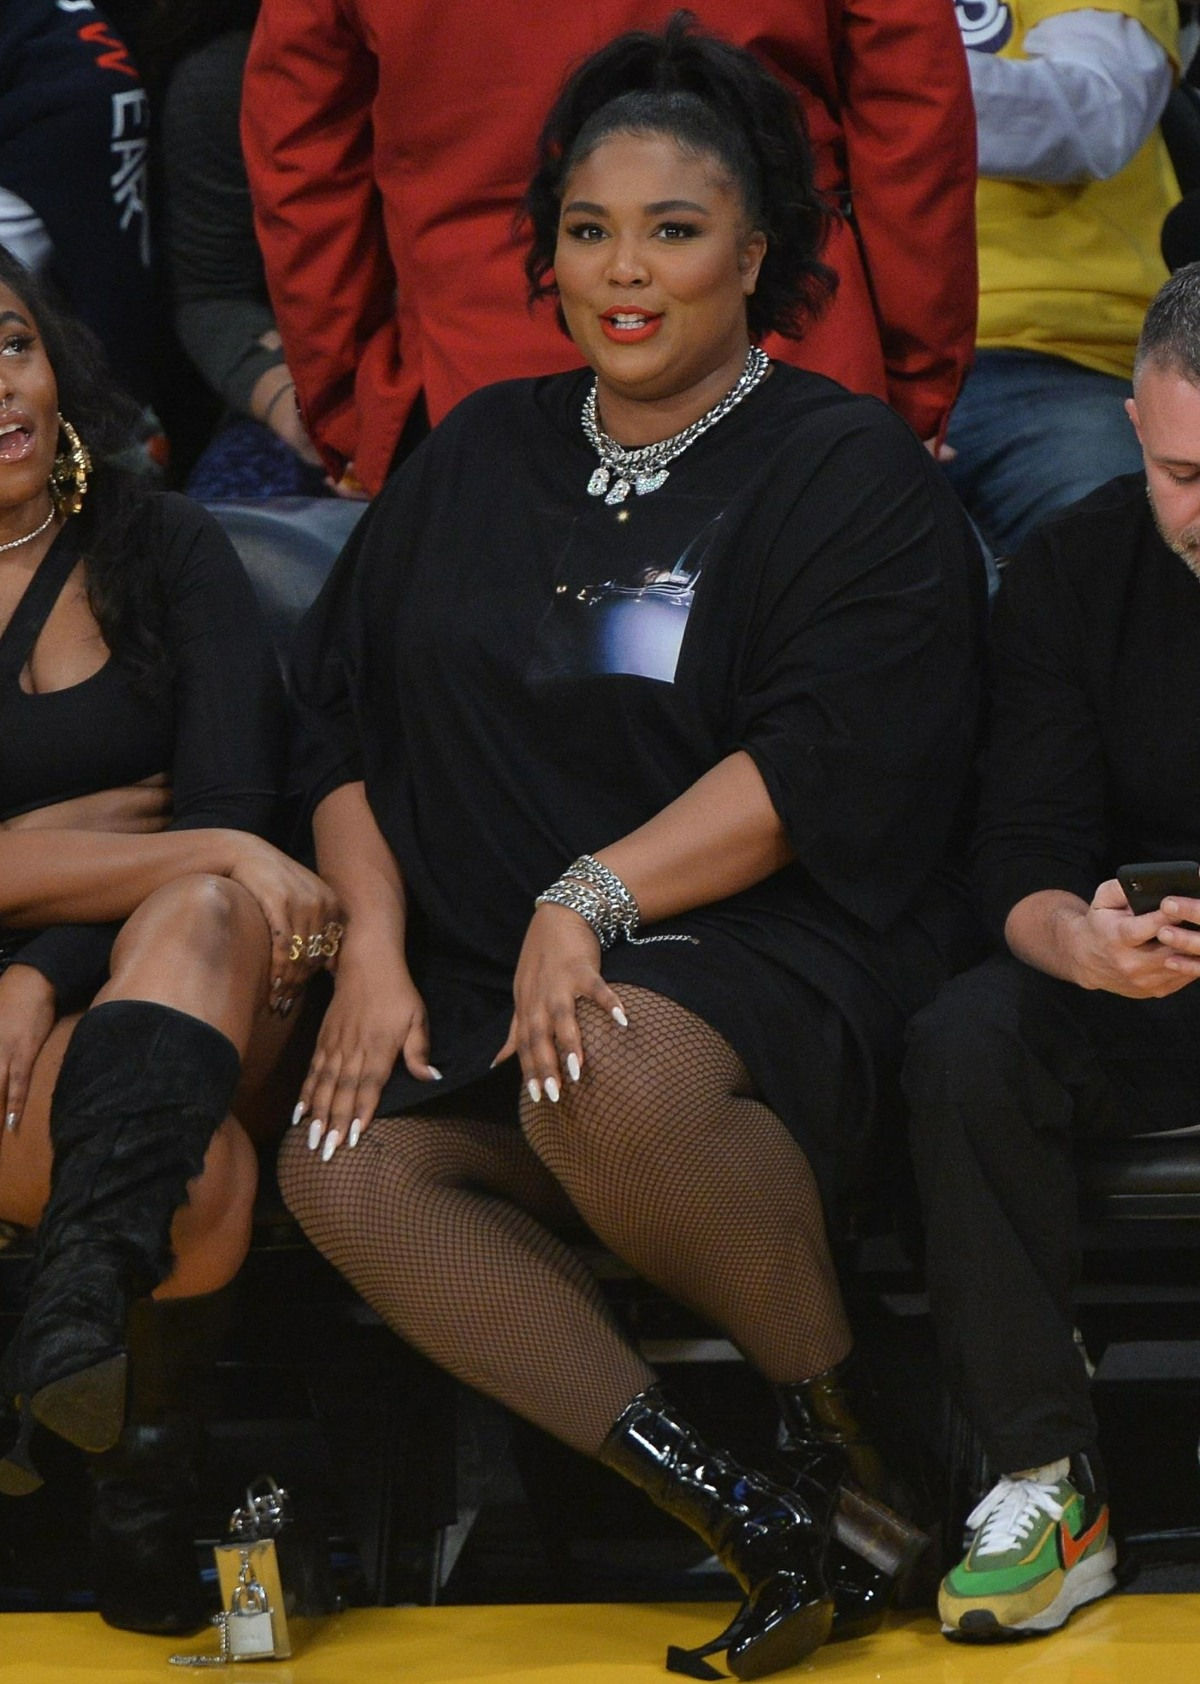 Lizzo clapped back at the people hating on her 'thong dress' at the Lakers game